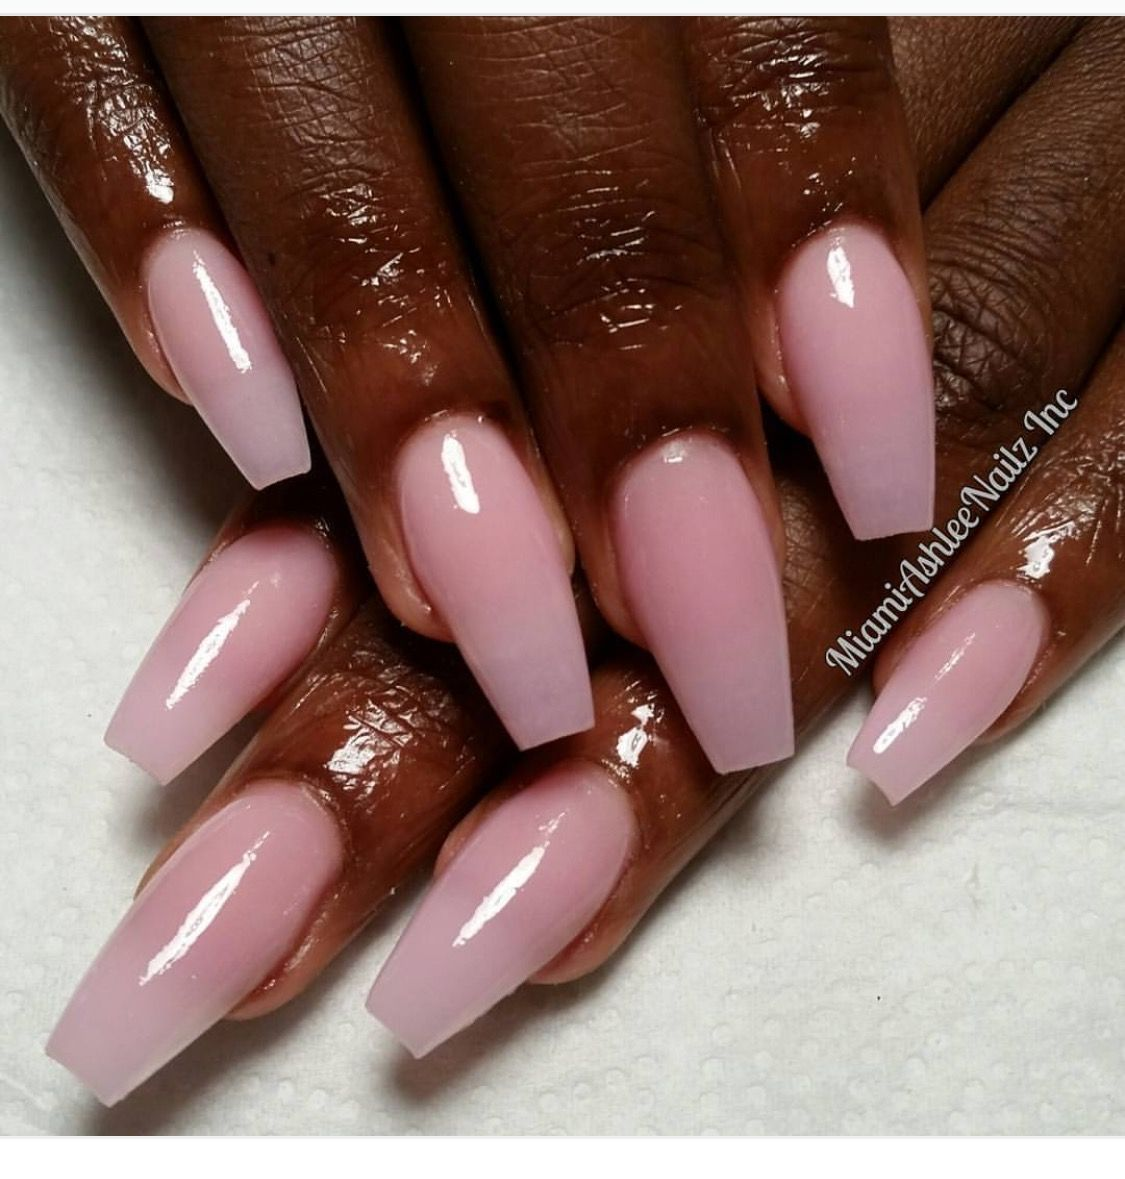 Beautiful Color Contrast Between The Dark Skin Complexion And Cotton Candy Pink Nail Color In 2020 Cotton Candy Nails Pink Acrylic Nails Pink Nail Colors